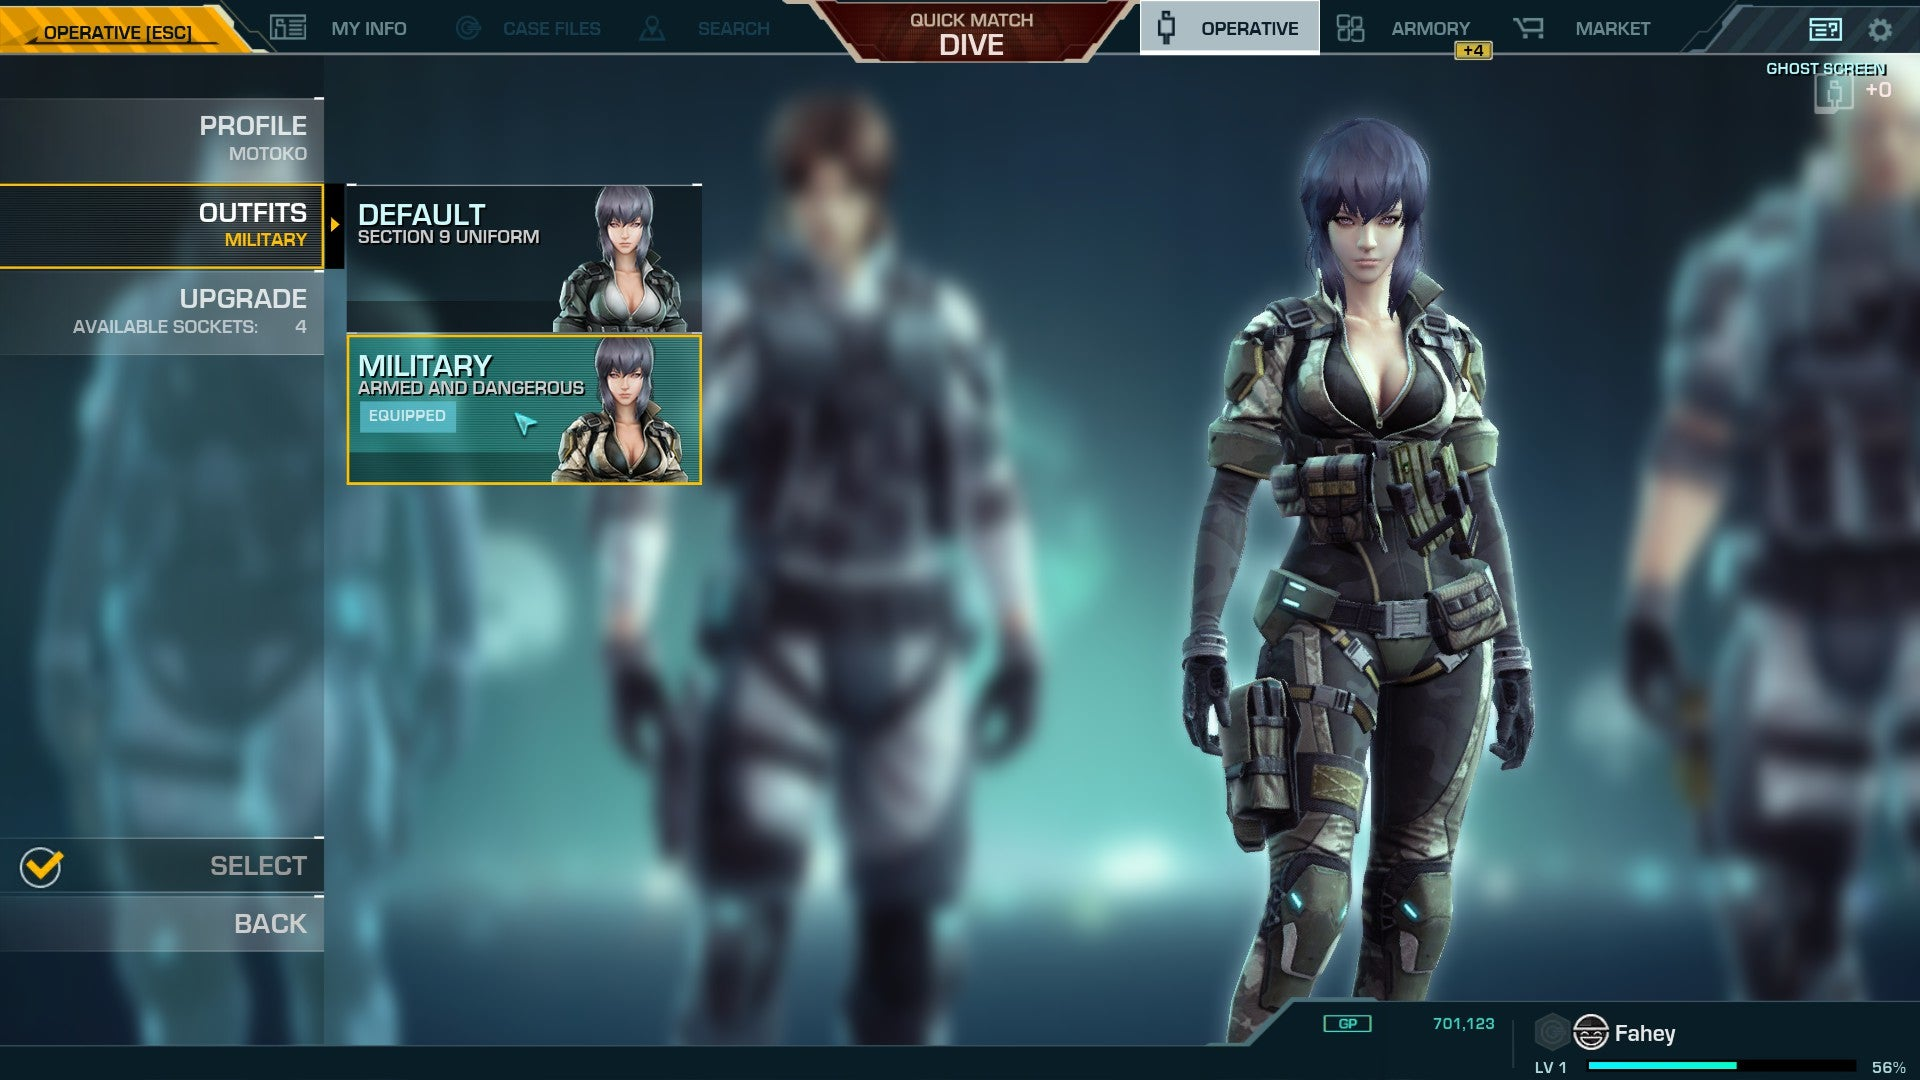 The Best Part Of The Ghost In The Shell Shooter So Far Is The Tutorial